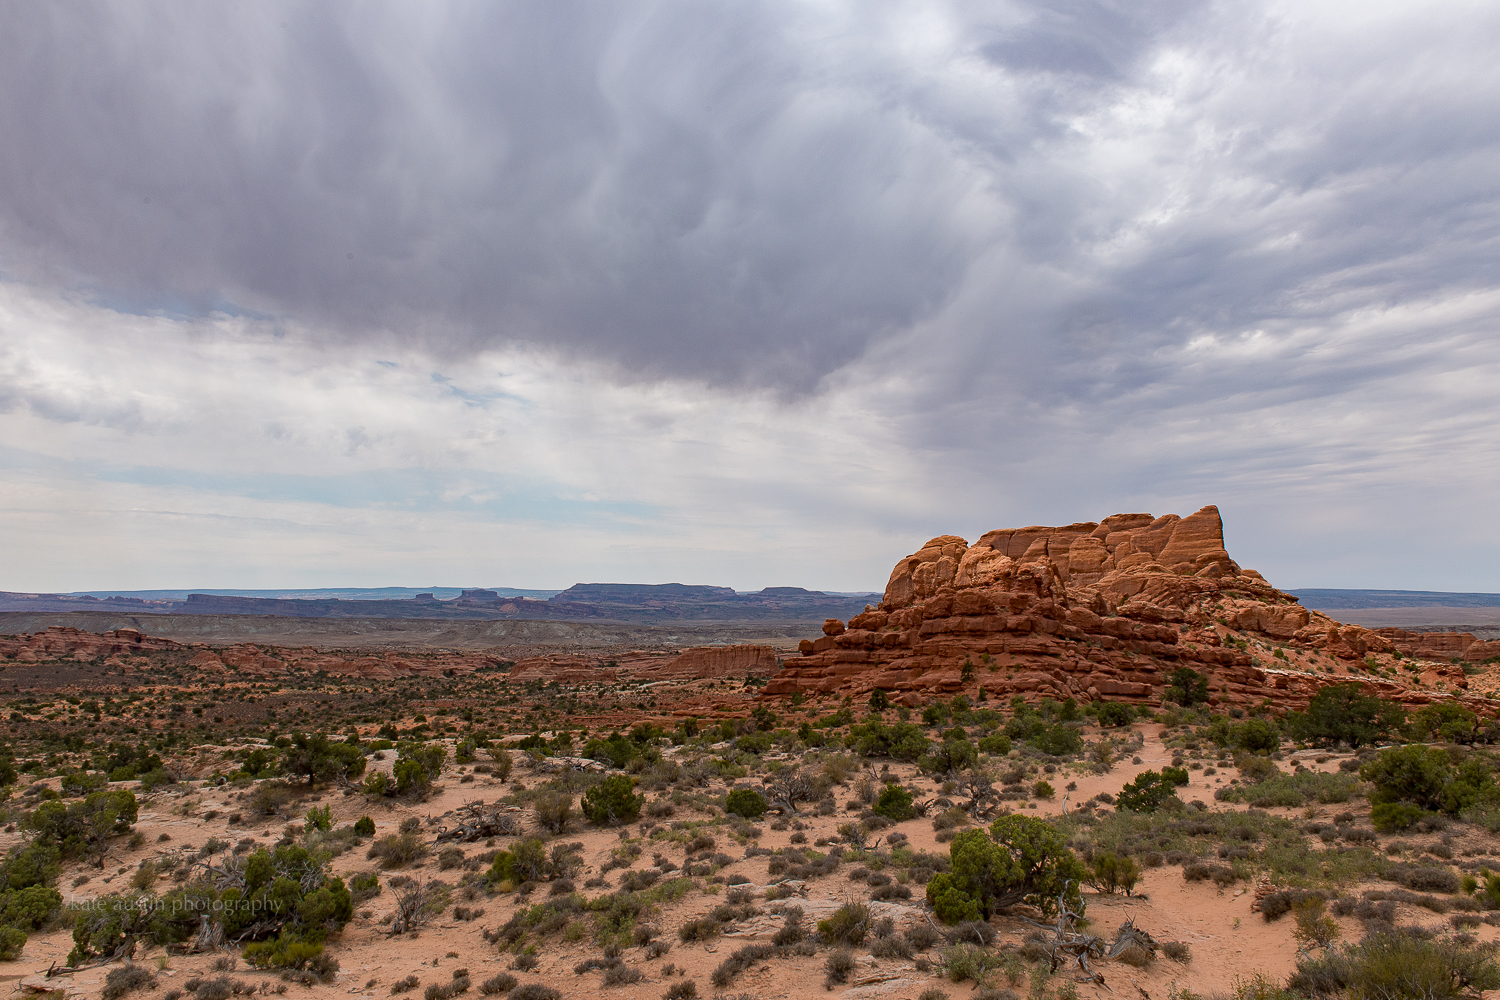 day37_murphytrail-canyonlands_moab201620160802-4.jpg